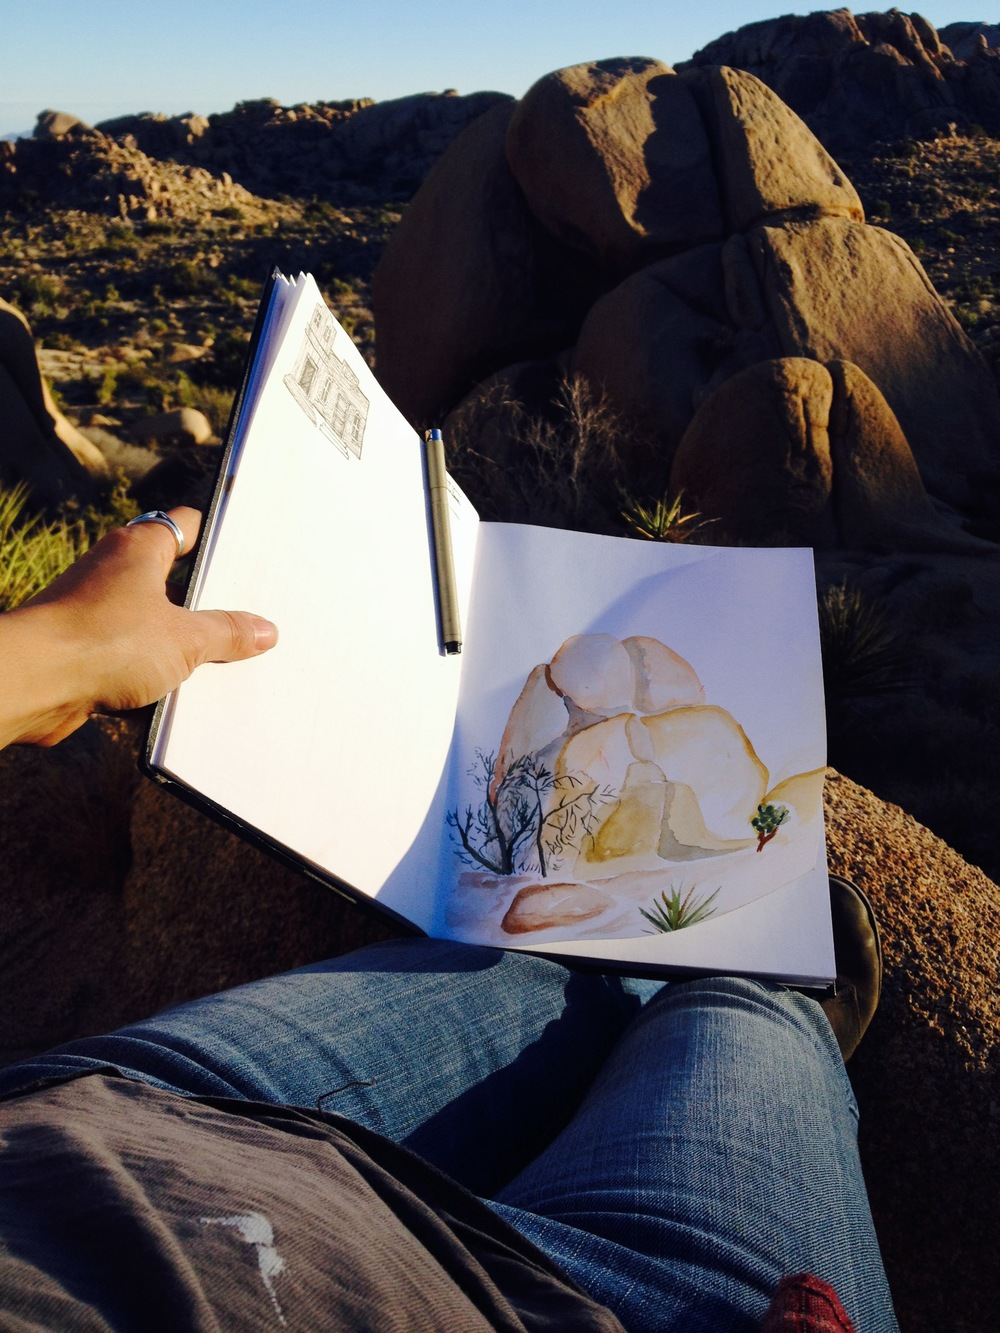 Channeling my inner Georgia O'Keeffe by sketching some rocks.